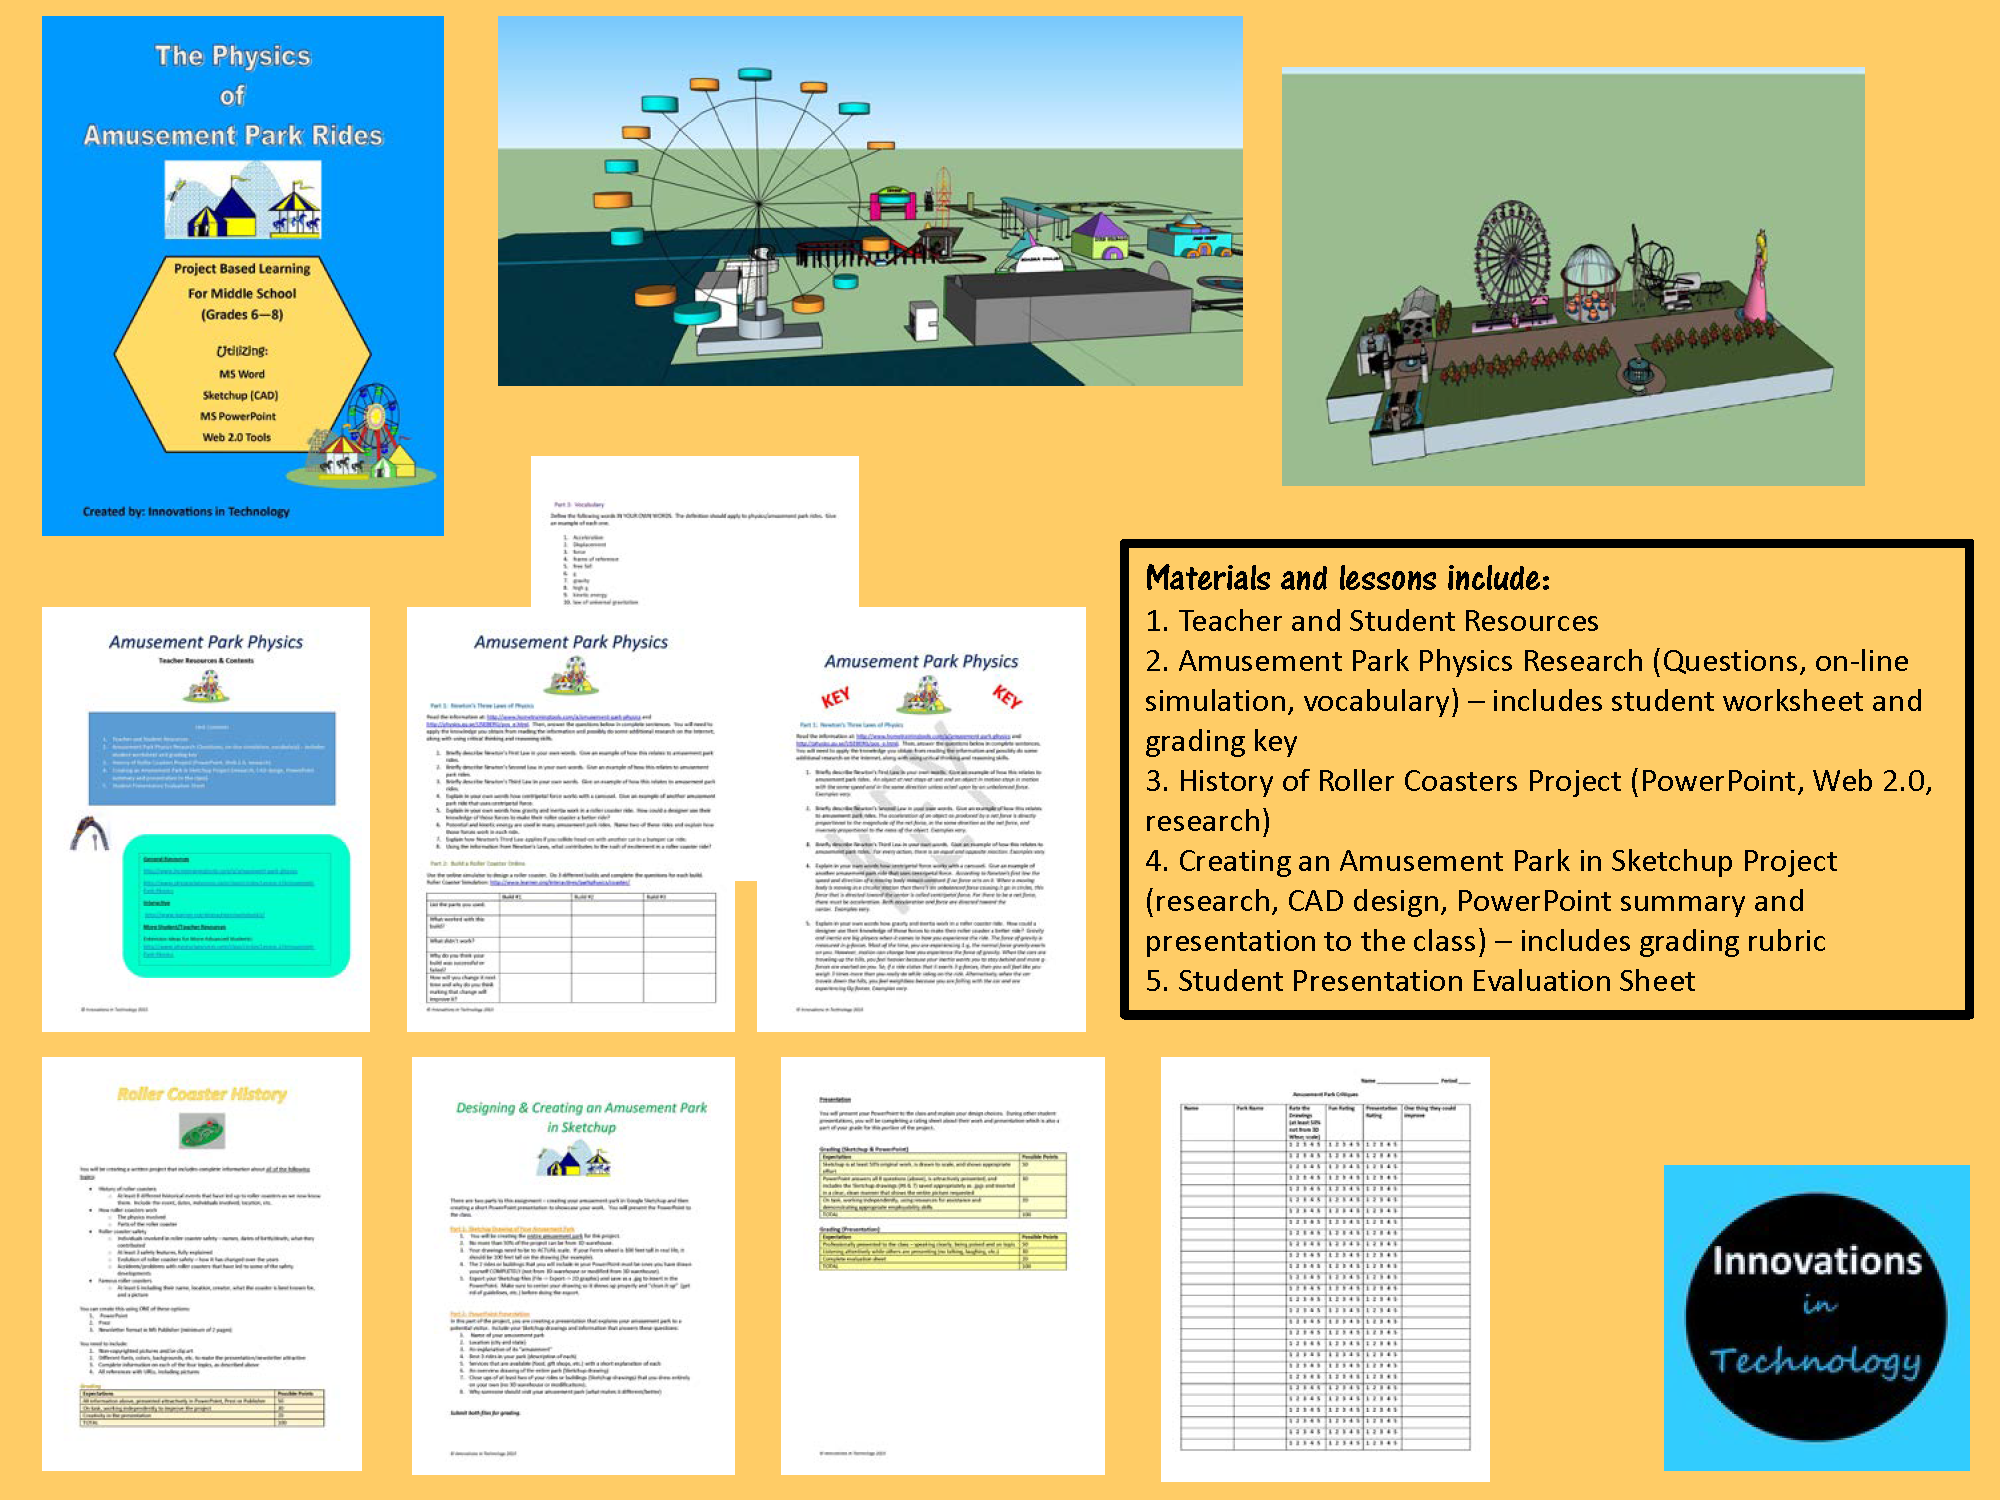 Distance Time Worksheet Pdf The Physics Of Amusement Park Rides  Amusement Park Rides  Year 8 Grammar Worksheets Pdf with Identify Angles Worksheet Pdf Physics Of Amusement Parks Project Based Learning For Middle School   Secondary To Research Percents And Fractions Worksheets Excel